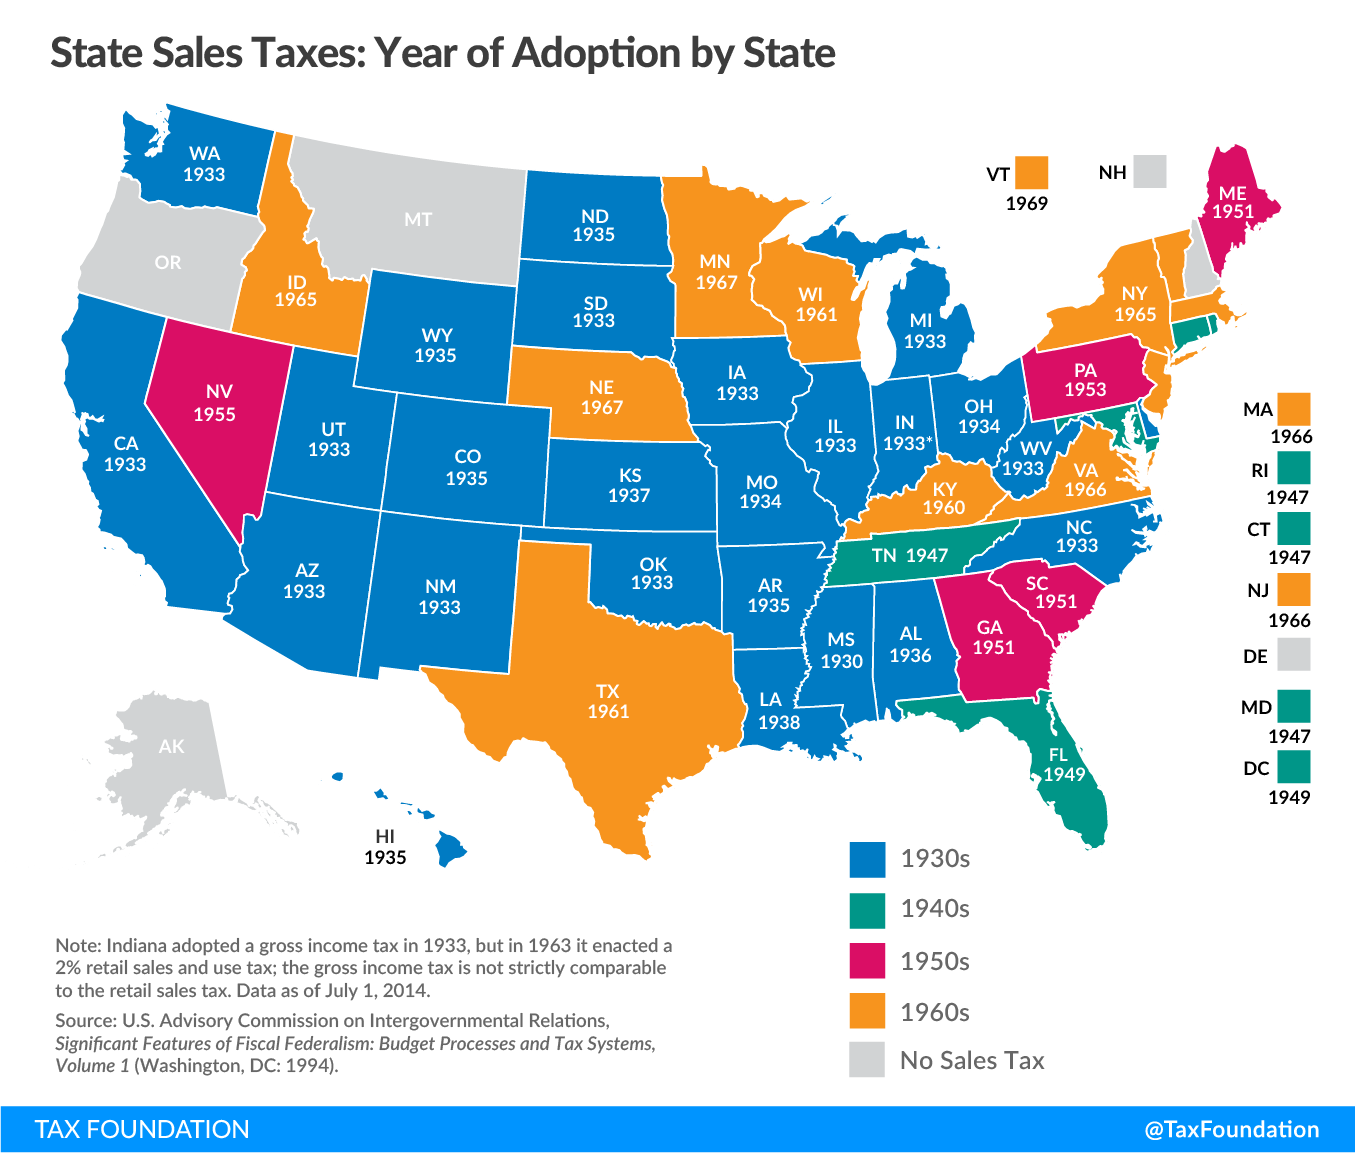 Utah sales tax proposal 2019 UT